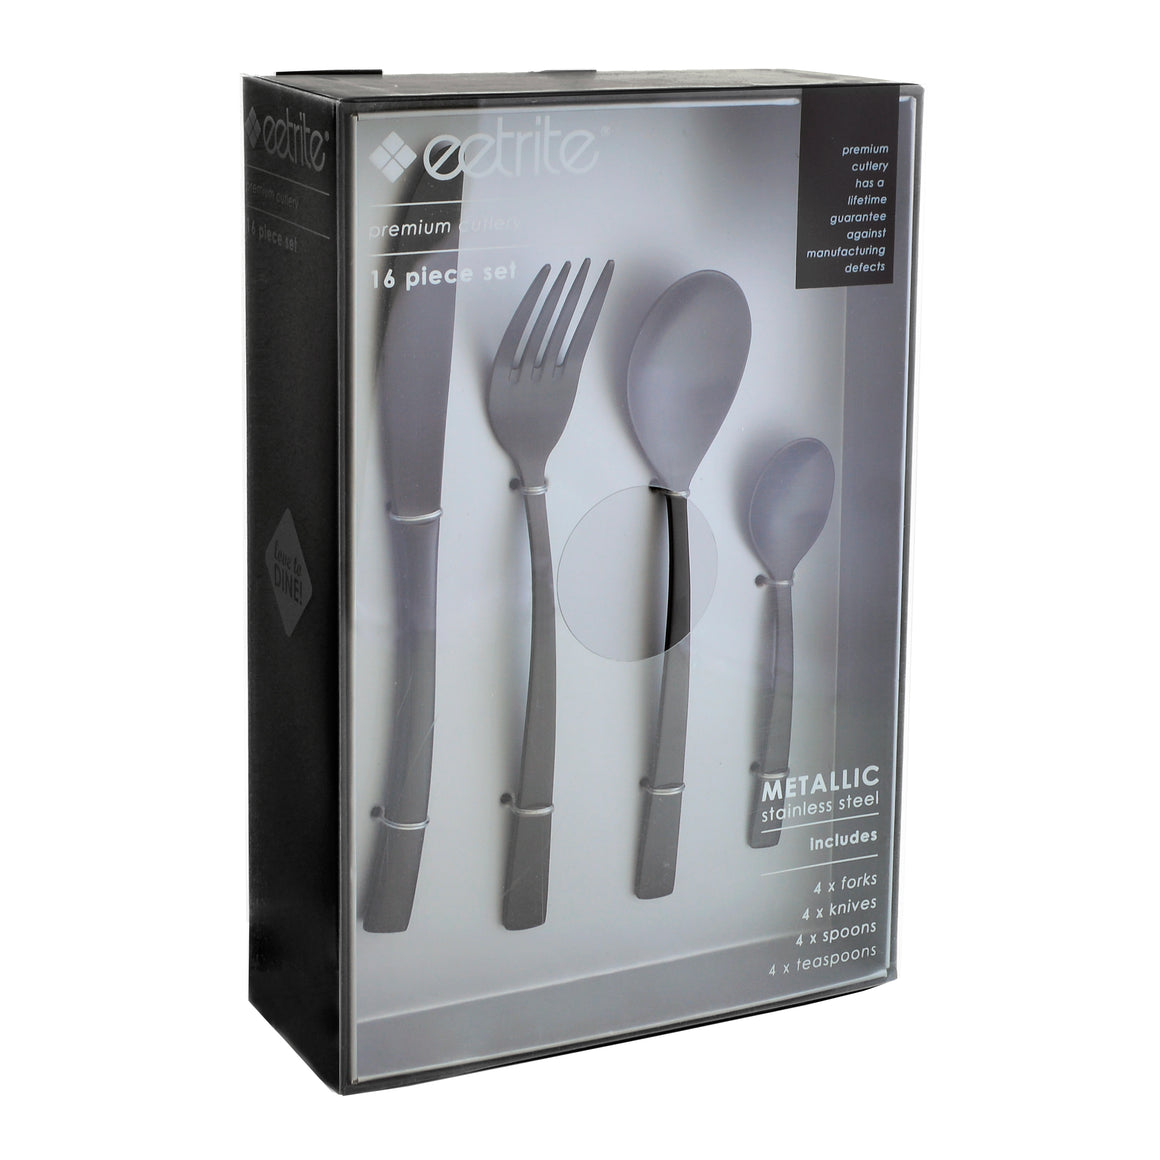 16pc Metallic Cutlery Set: Matte Black